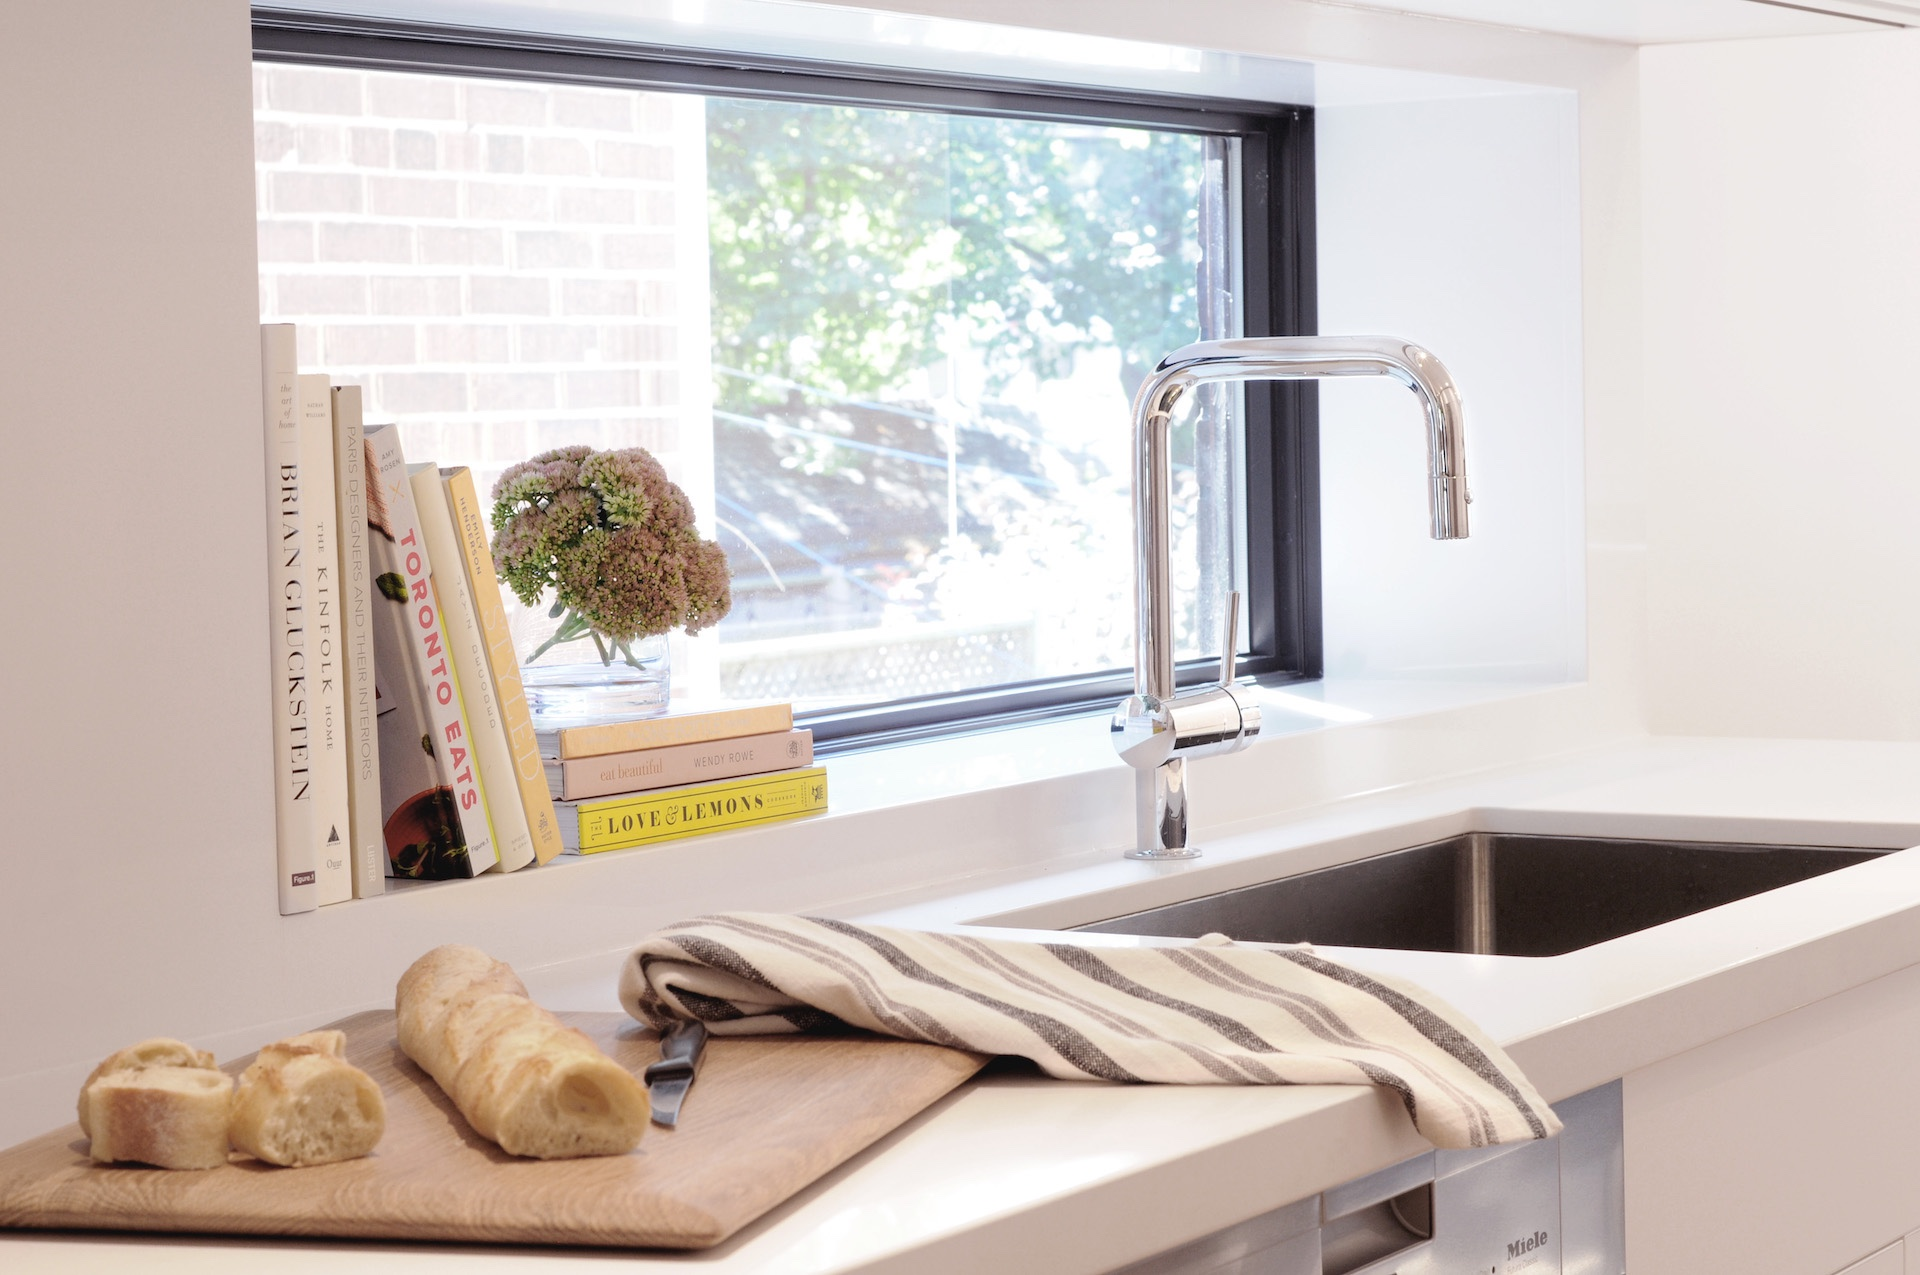 Silver faucet and sink under window